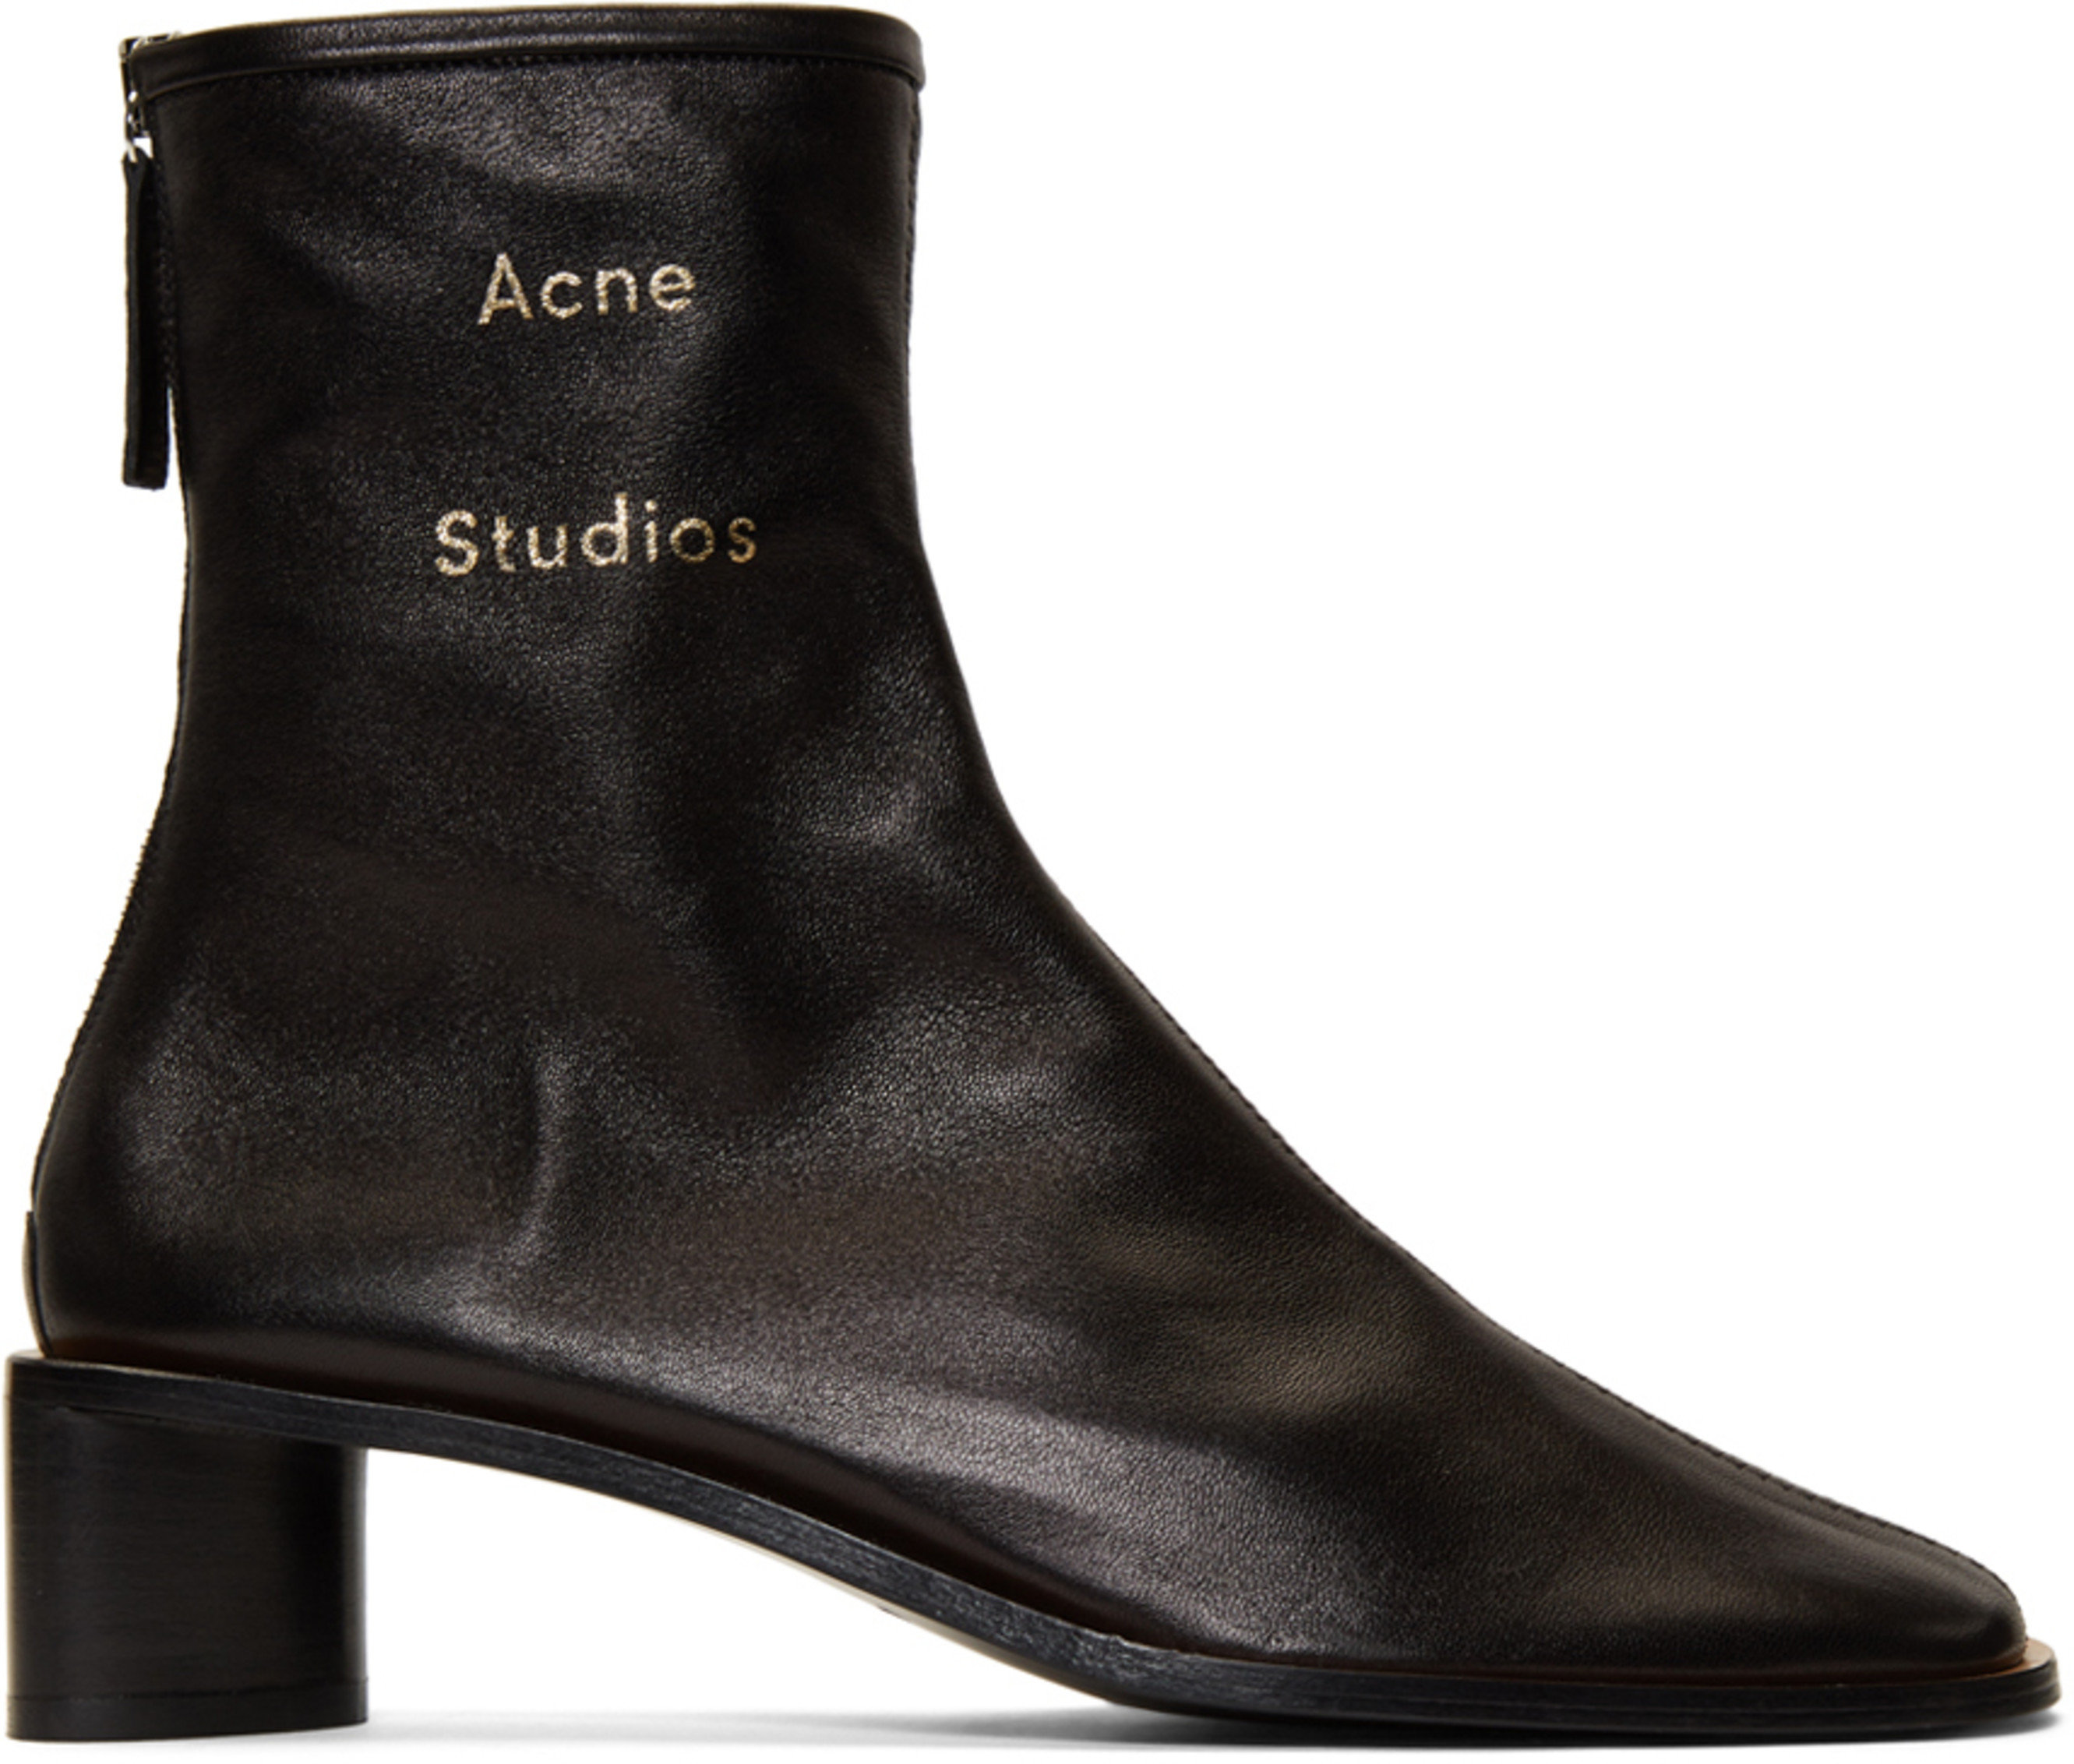 588c3b7cfd8 Acne Studios for Women SS19 Collection